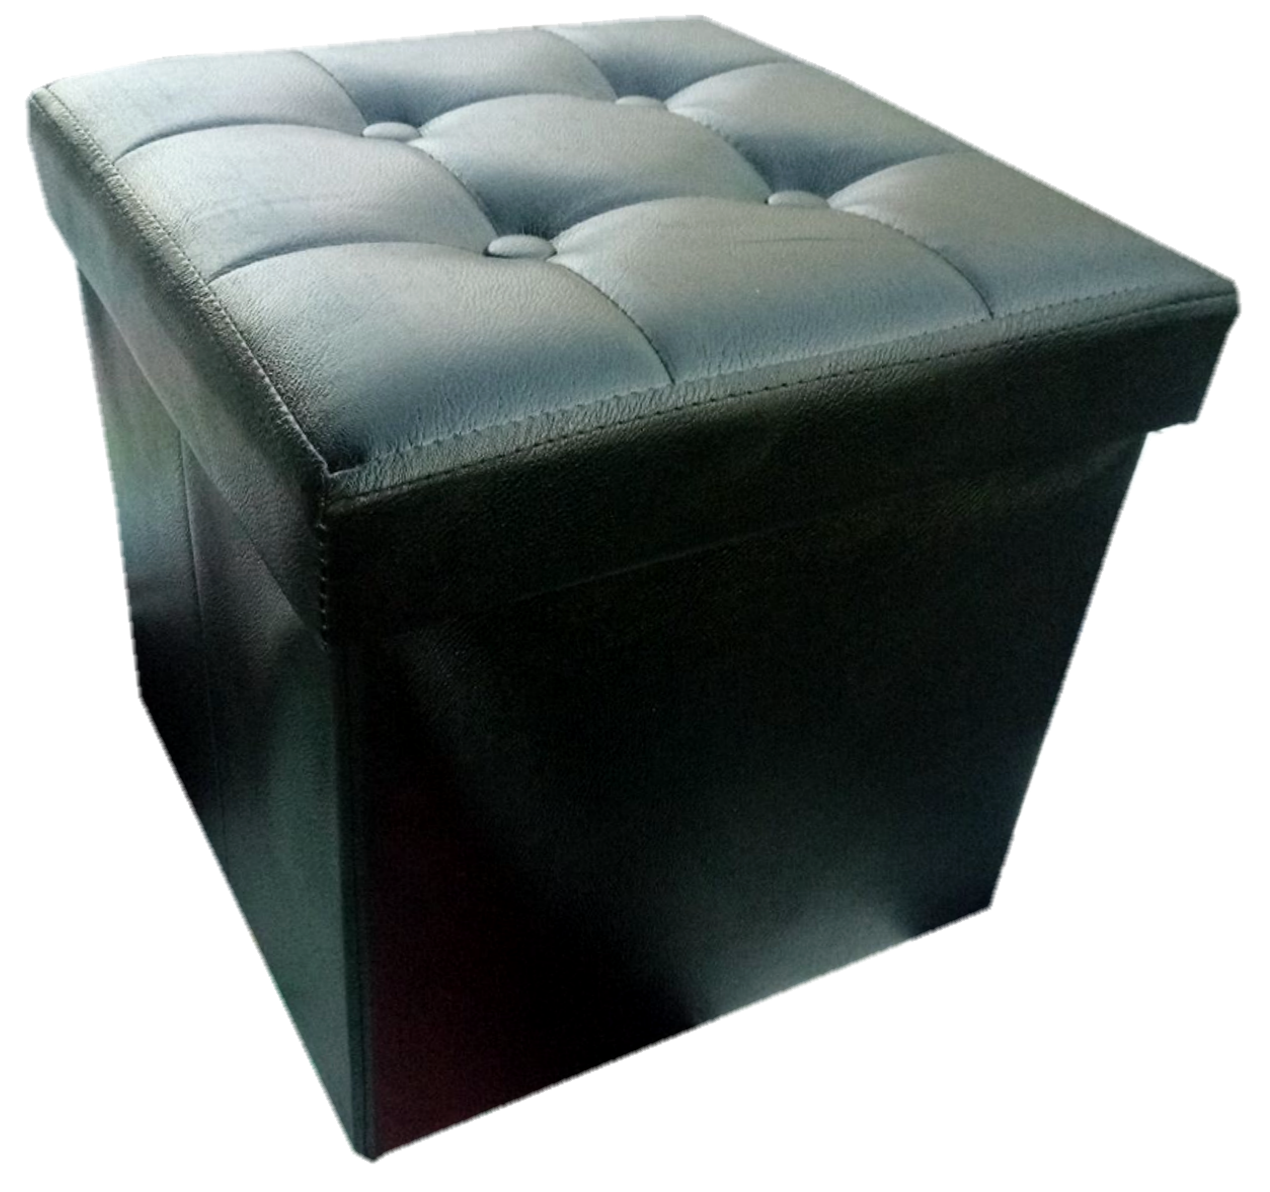 pouf avec coffre de rangement rangement mobilier. Black Bedroom Furniture Sets. Home Design Ideas